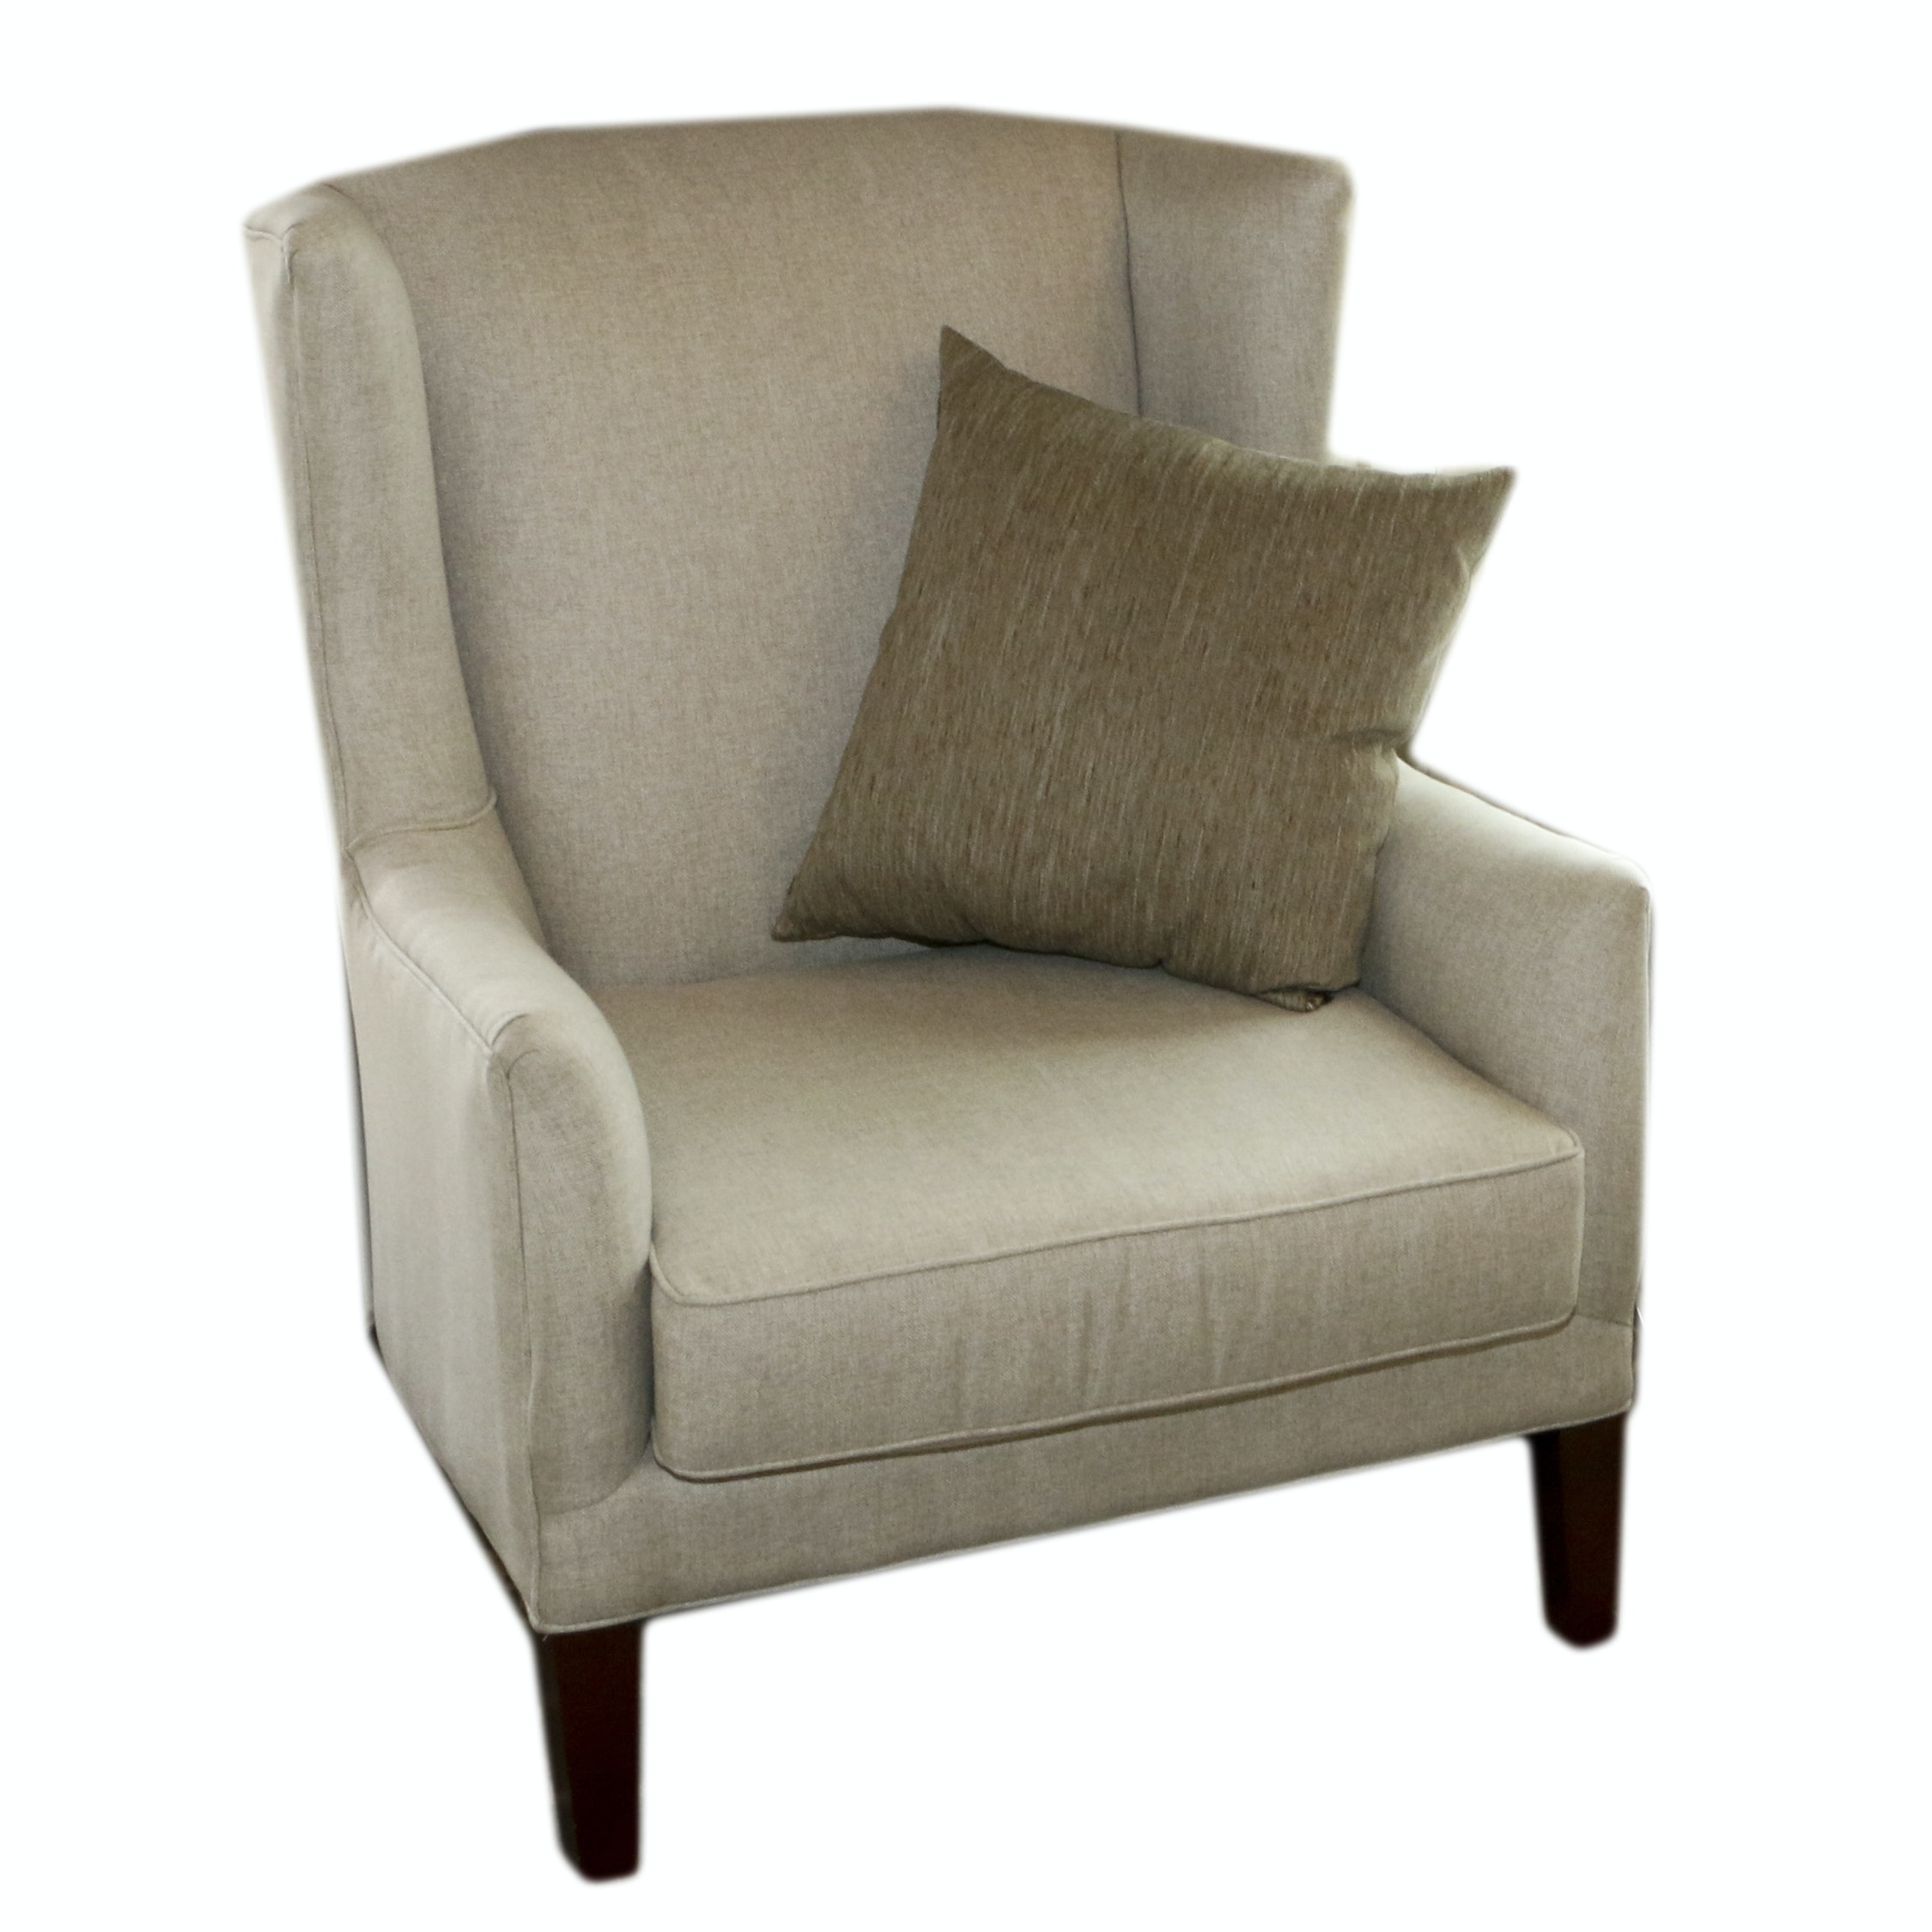 Upholstered Wingback Armchair, 21st Century